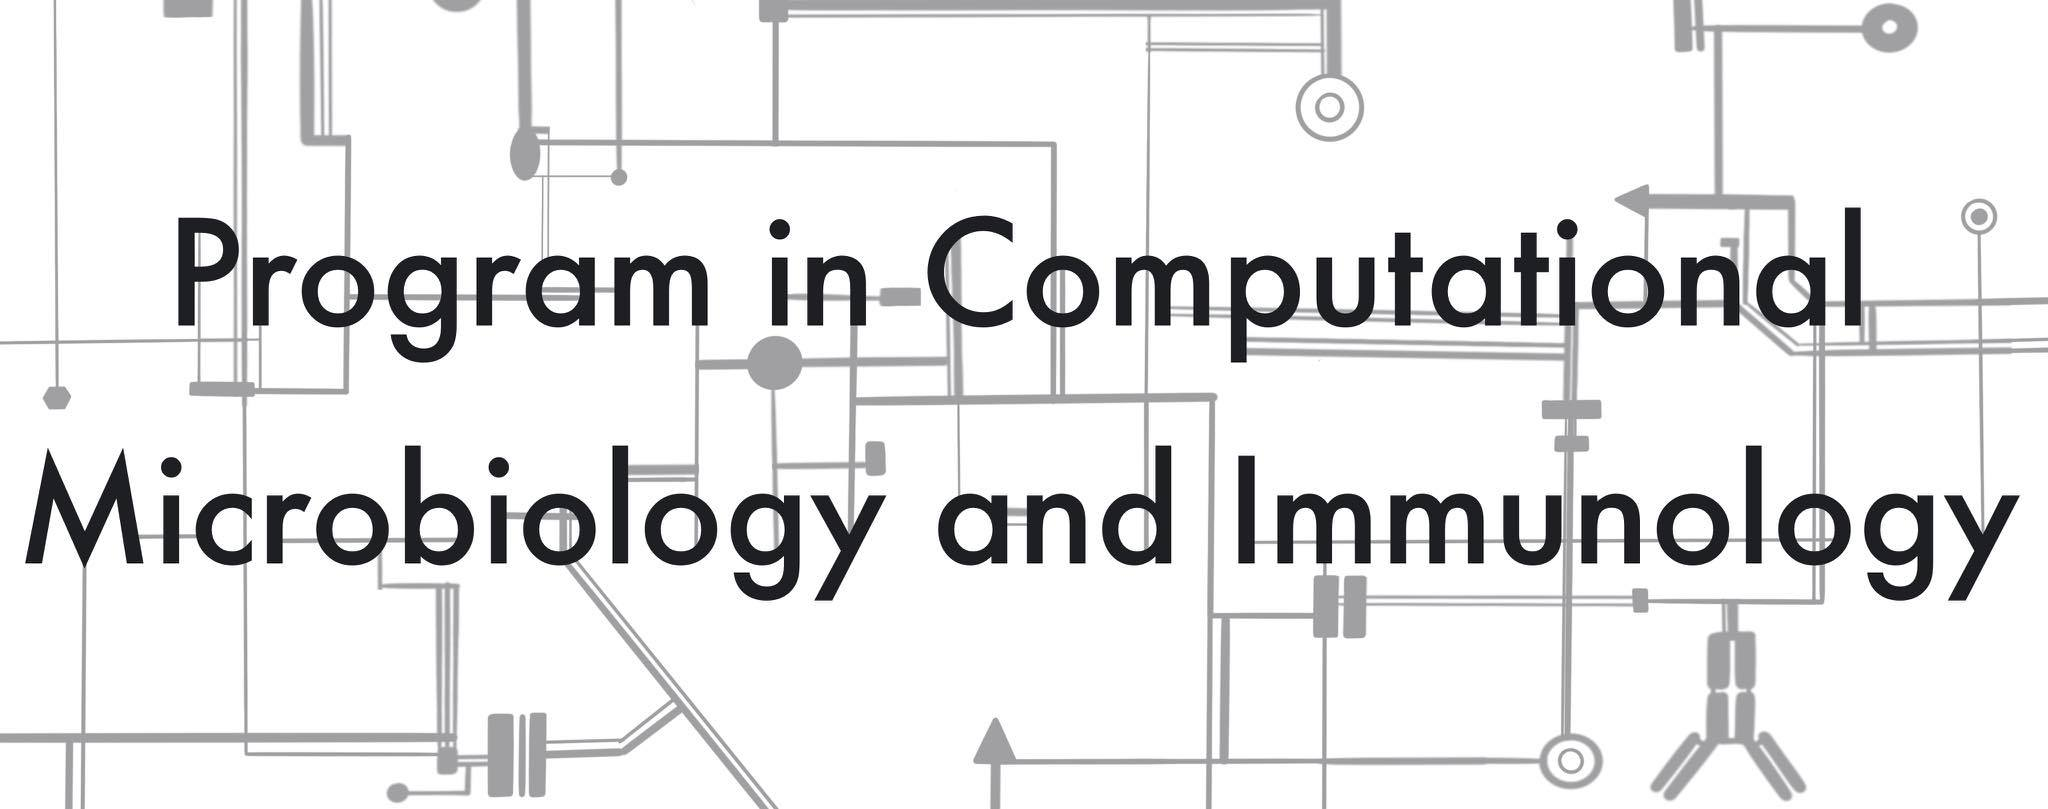 Program in Computational Microbiology and Immunology